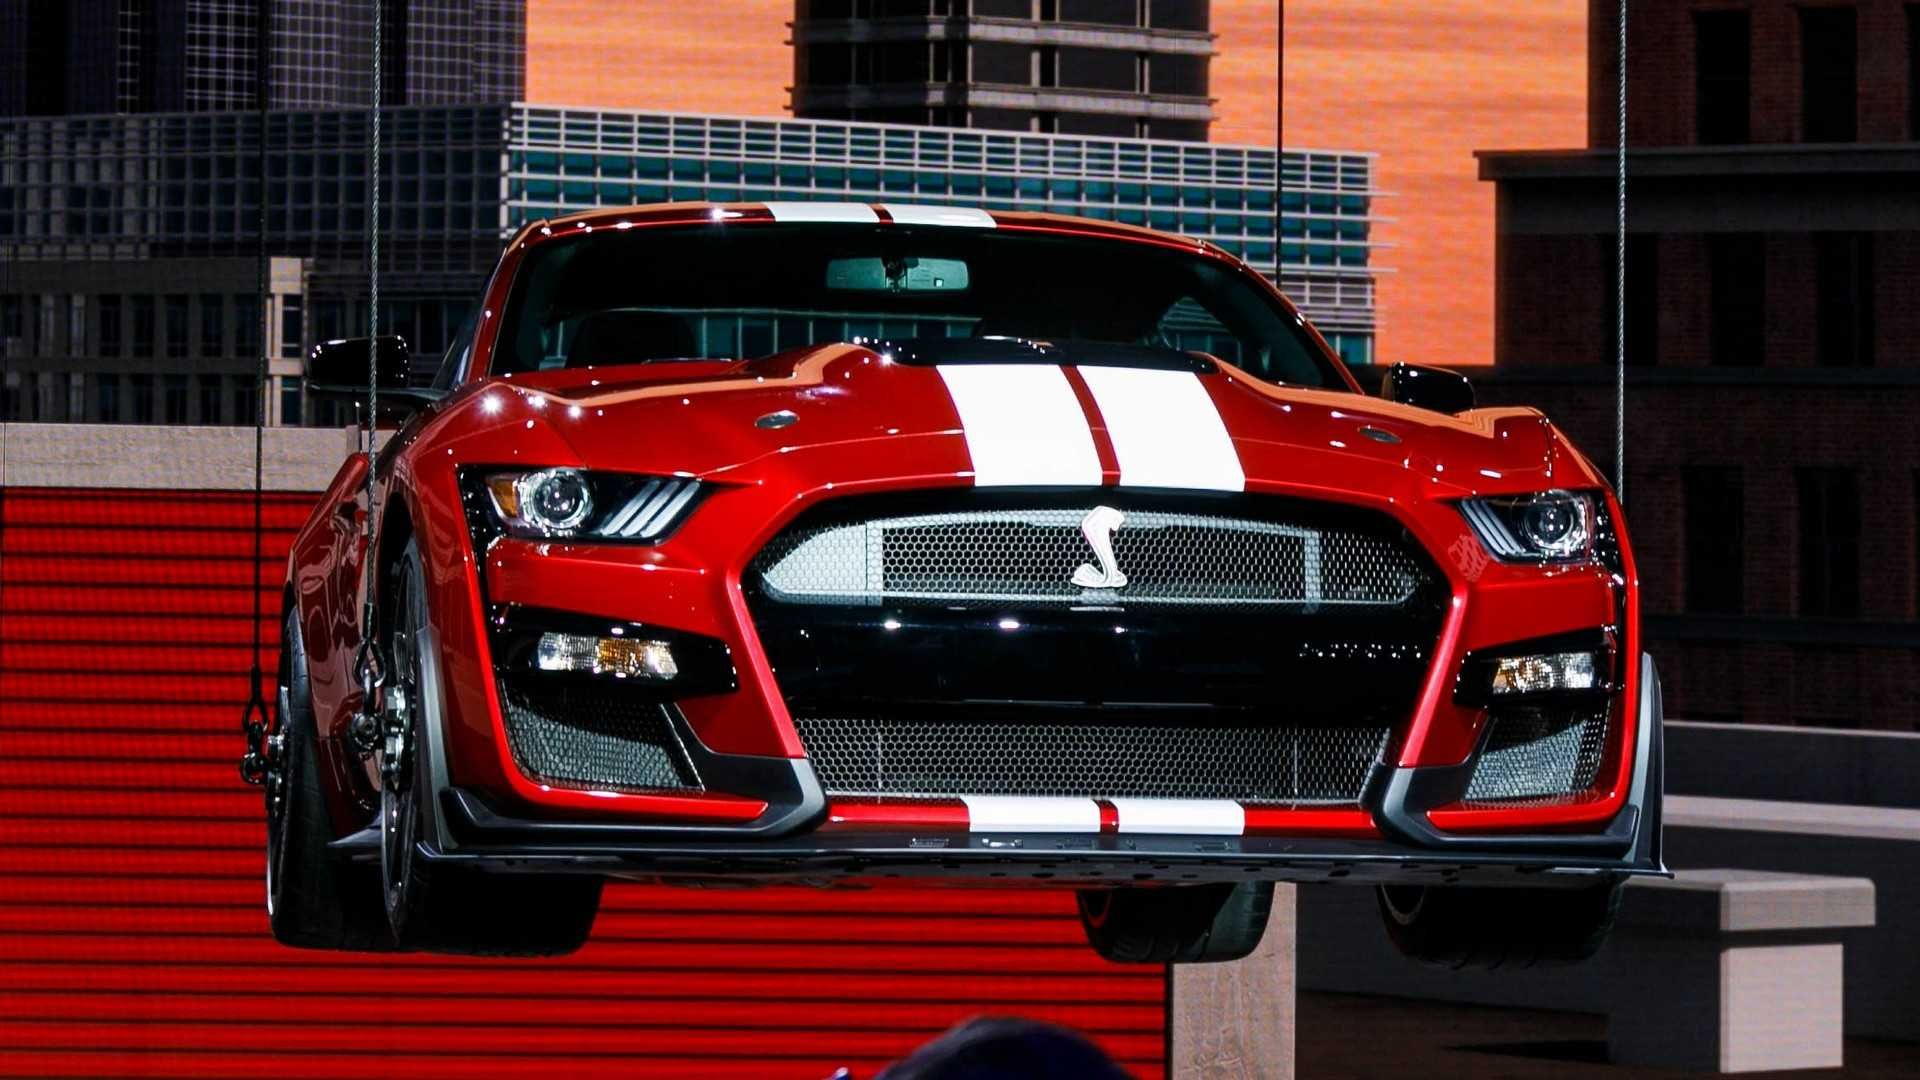 2020 Gt500 Mustang Curb Weight And Dimensions Revealed To Mustang Shelby Shelby Gt500 Ford Mustang Shelby Gt500